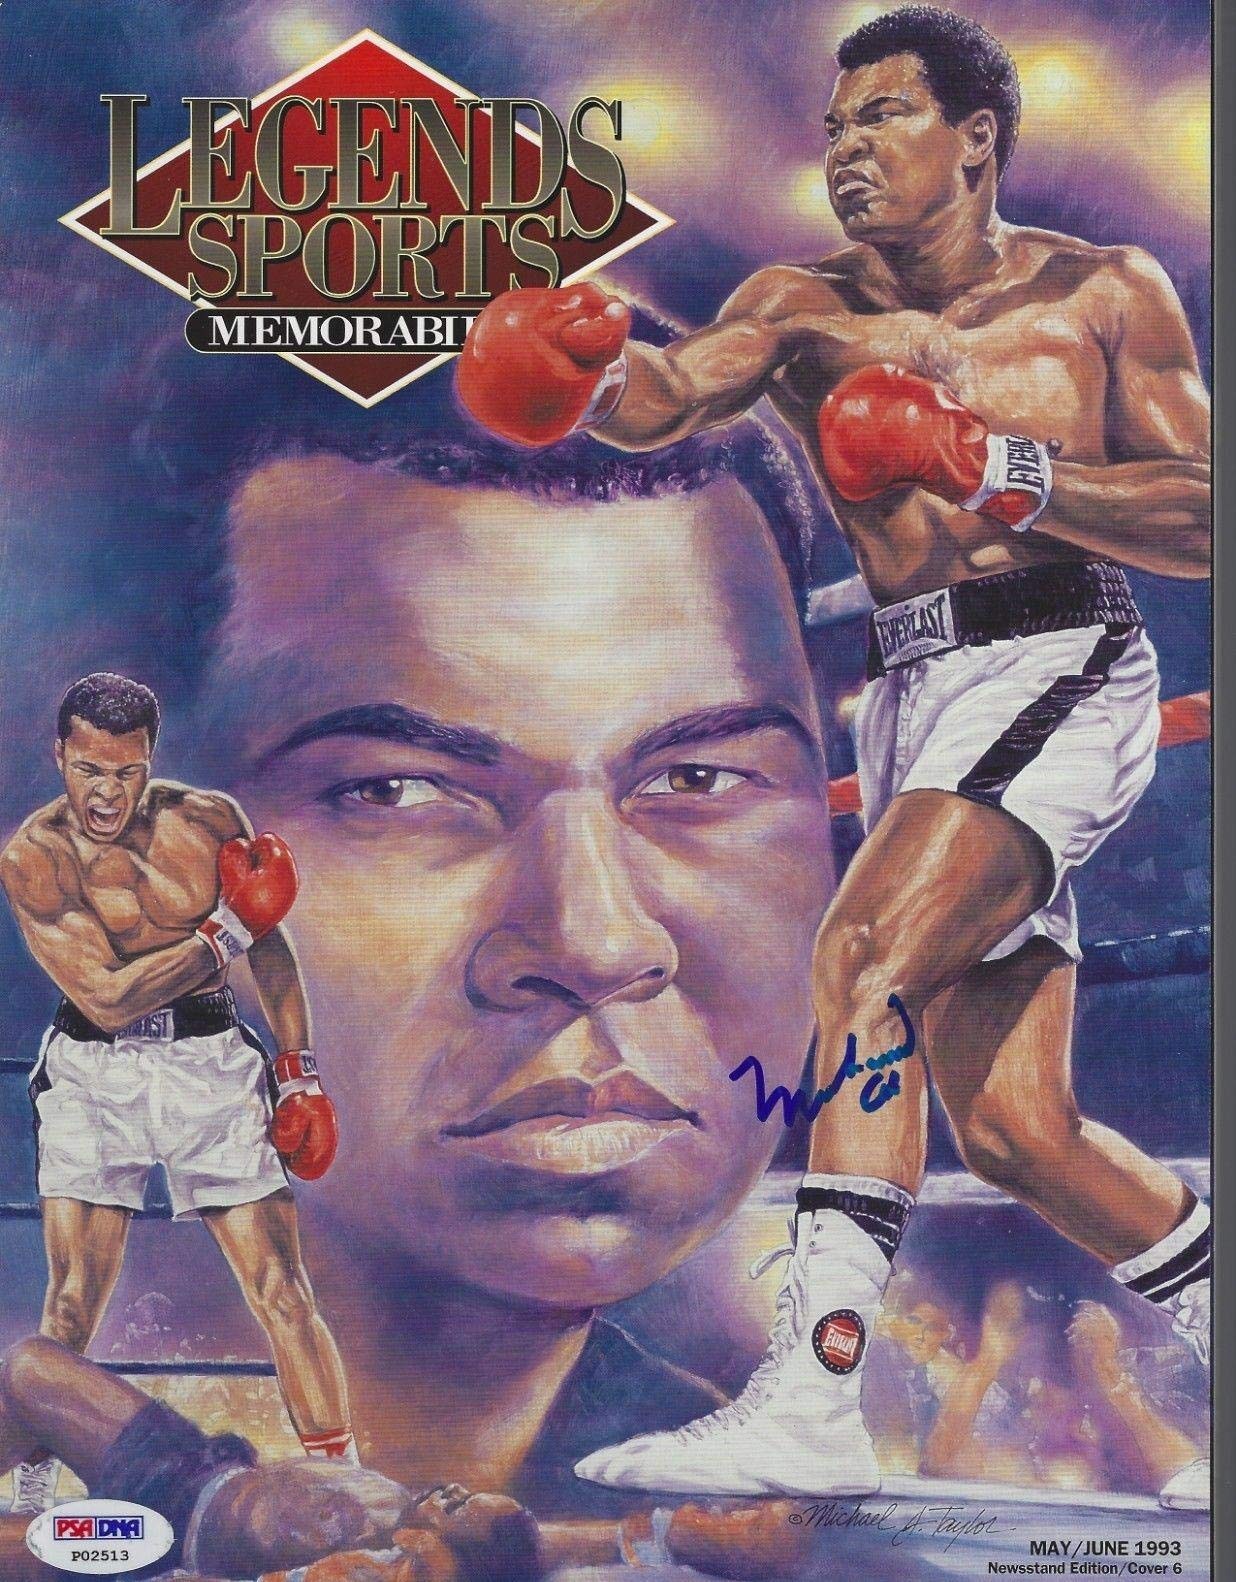 MUHAMMAD ALI Signed 1993 LEGENDS Magazine with COA (NO Label) PSA/DNA Certified Autographed Boxing Magazines